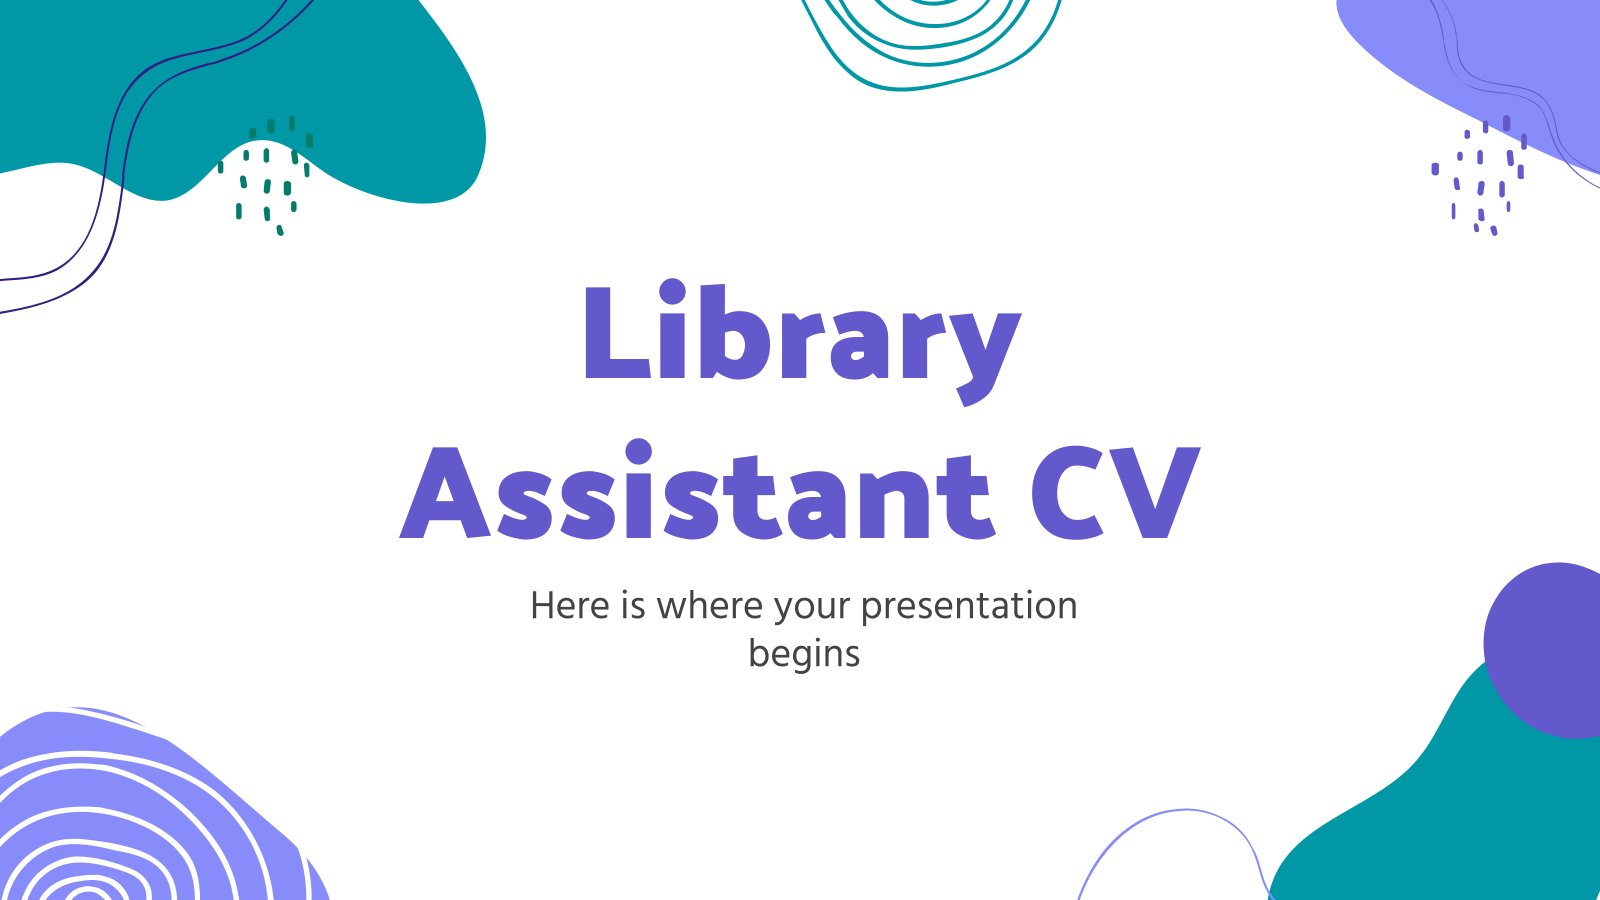 Library Assistant CV presentation template